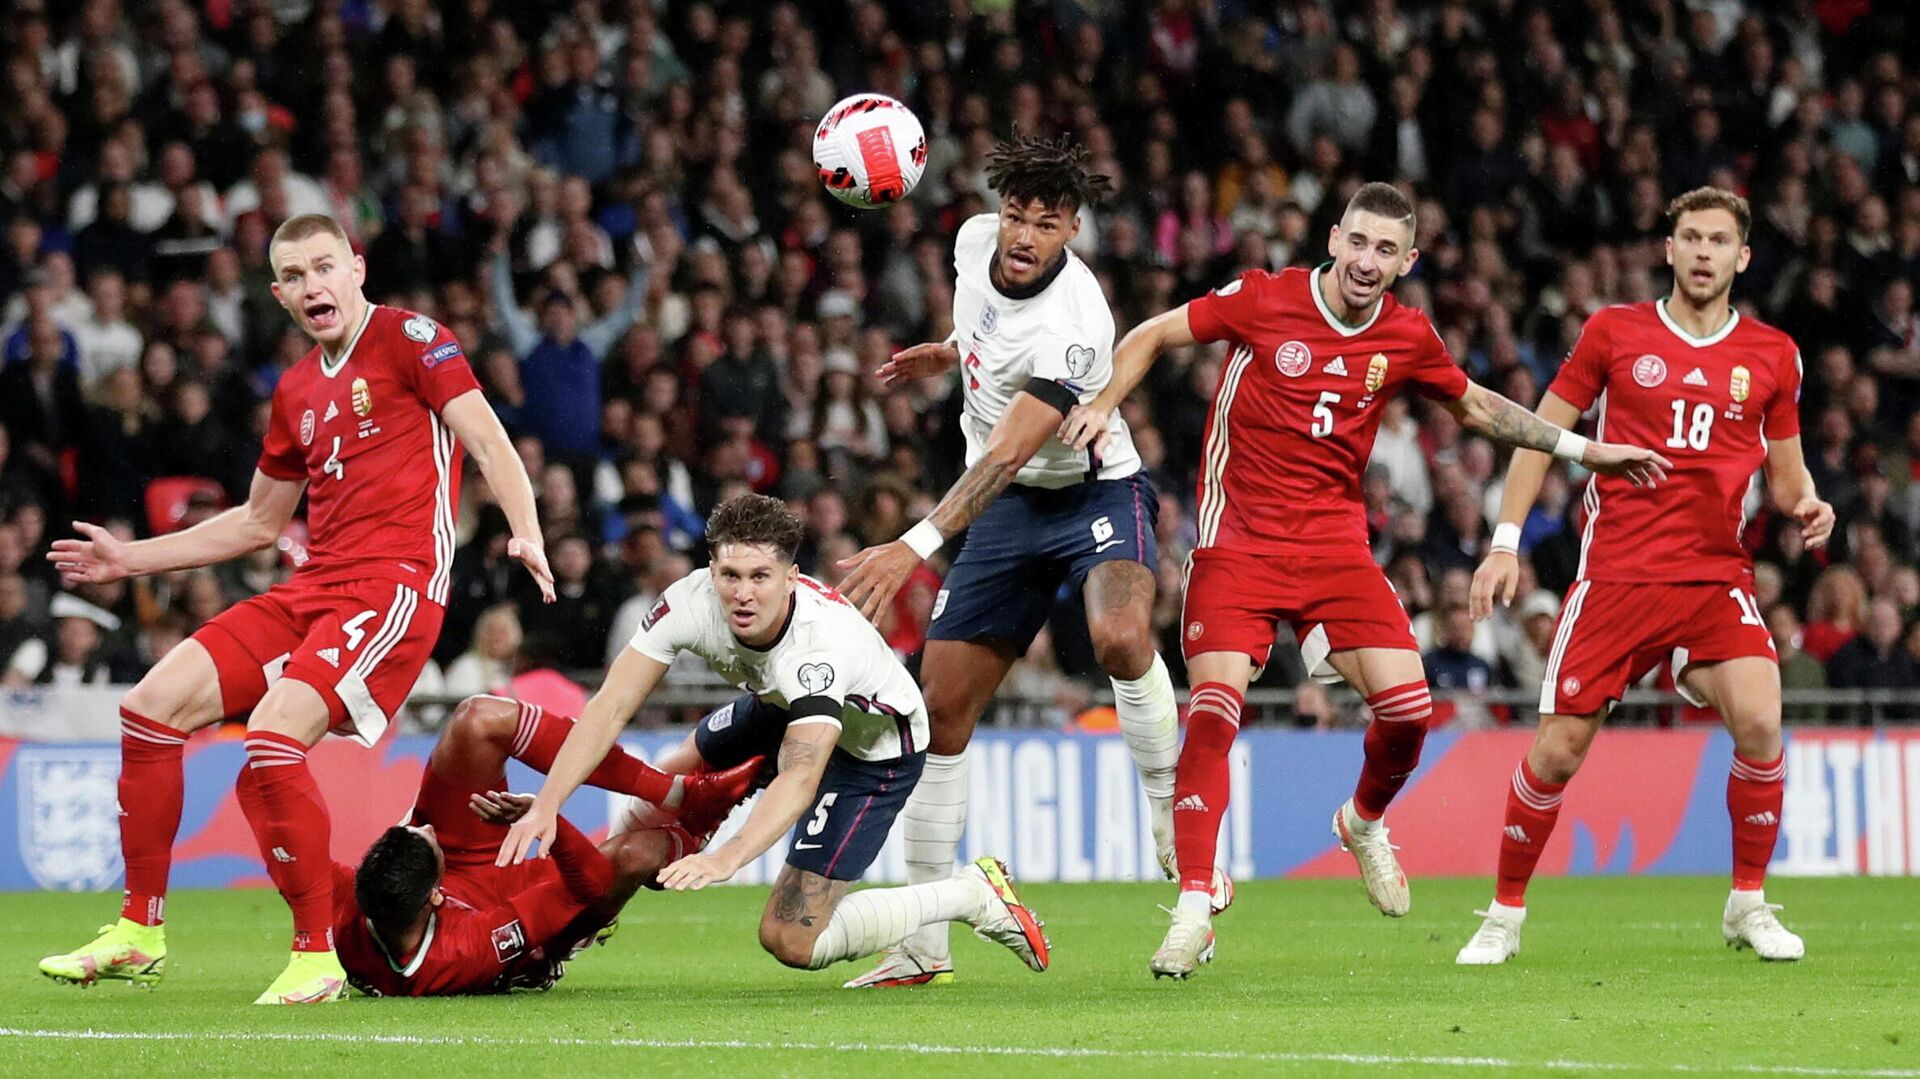 Soccer Football - World Cup - UEFA Qualifiers - Group I - England v Hungary - Wembley Stadium, London, Britain - October 12, 2021 Hungary's Attila Szalai in action with England's John Stones Action Images via Reuters/Carl Recine     TPX IMAGES OF THE DAY - РИА Новости, 1920, 14.10.2021